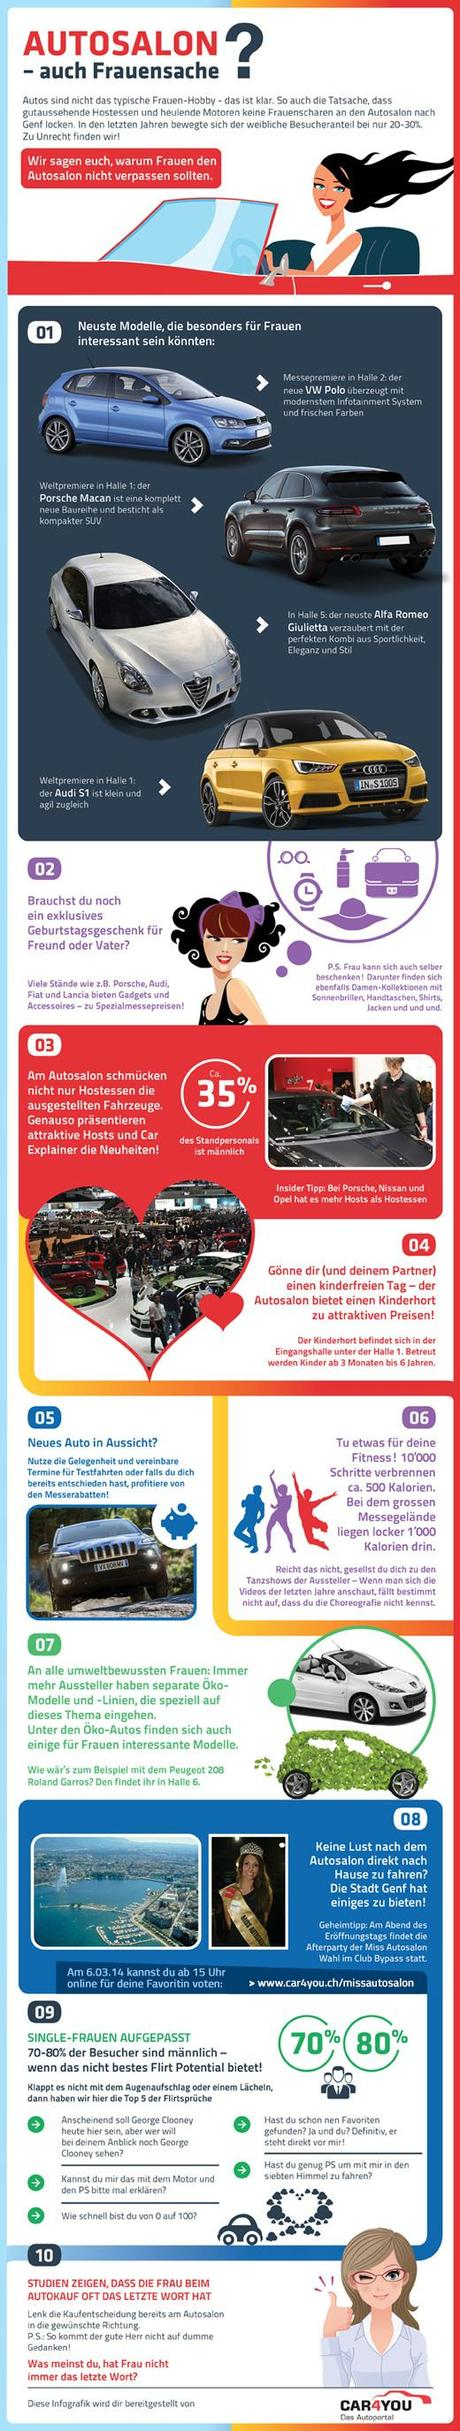 Infografik: Autosalon Genf - auch Frauensache? | car4you.ch